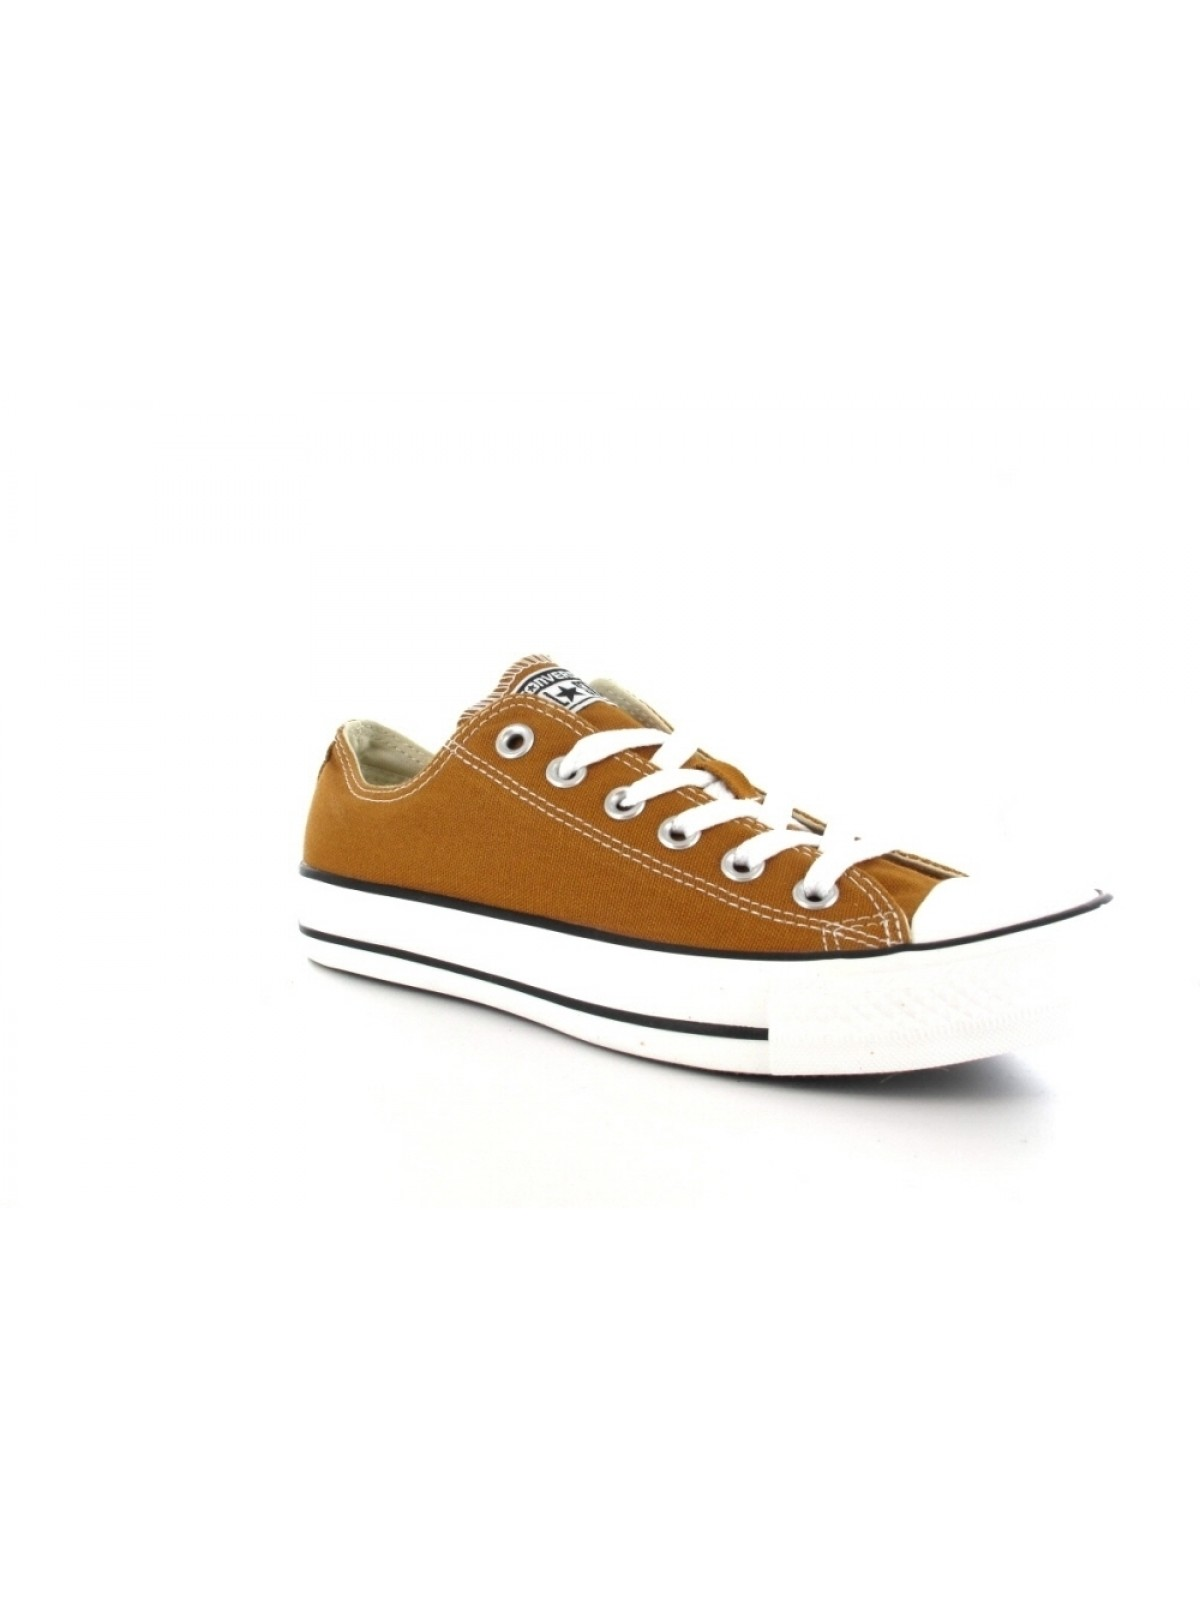 Converse Chuck Taylor all star toile basse marron clair